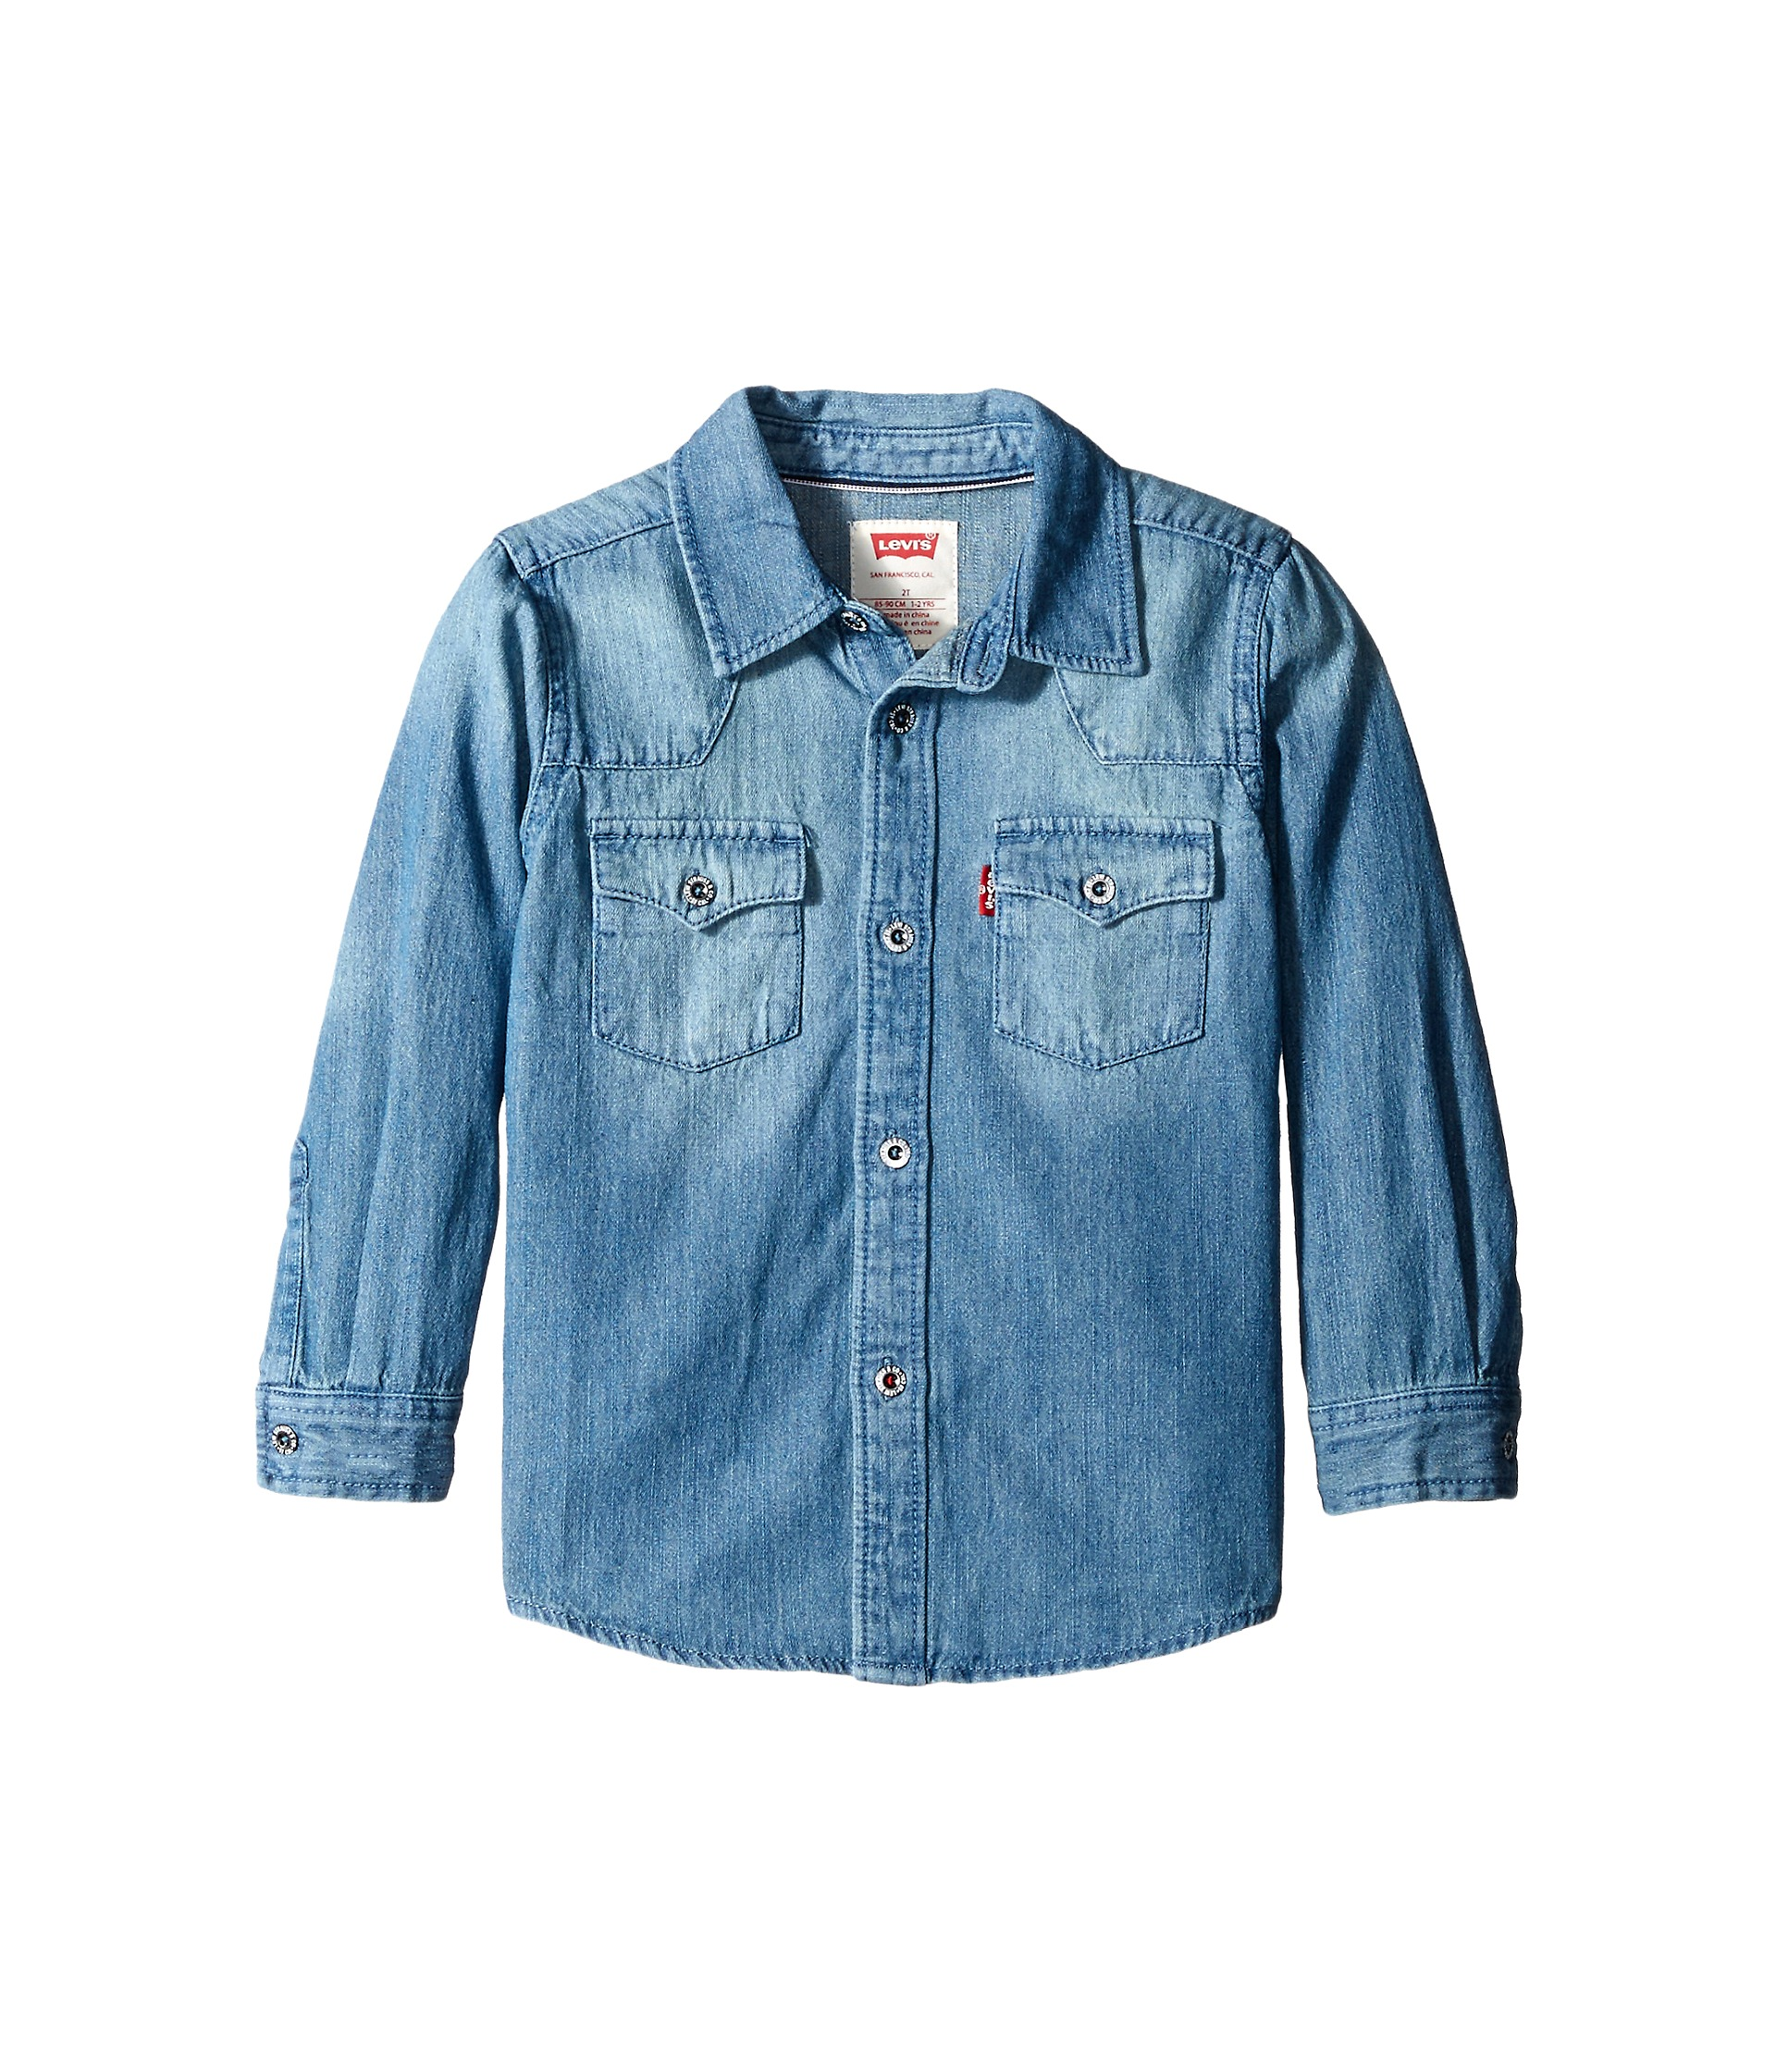 Related Searches: western shirts men regular western shirts men western shirts women regular western shirt women cowboy western shirts Home > All Categories >